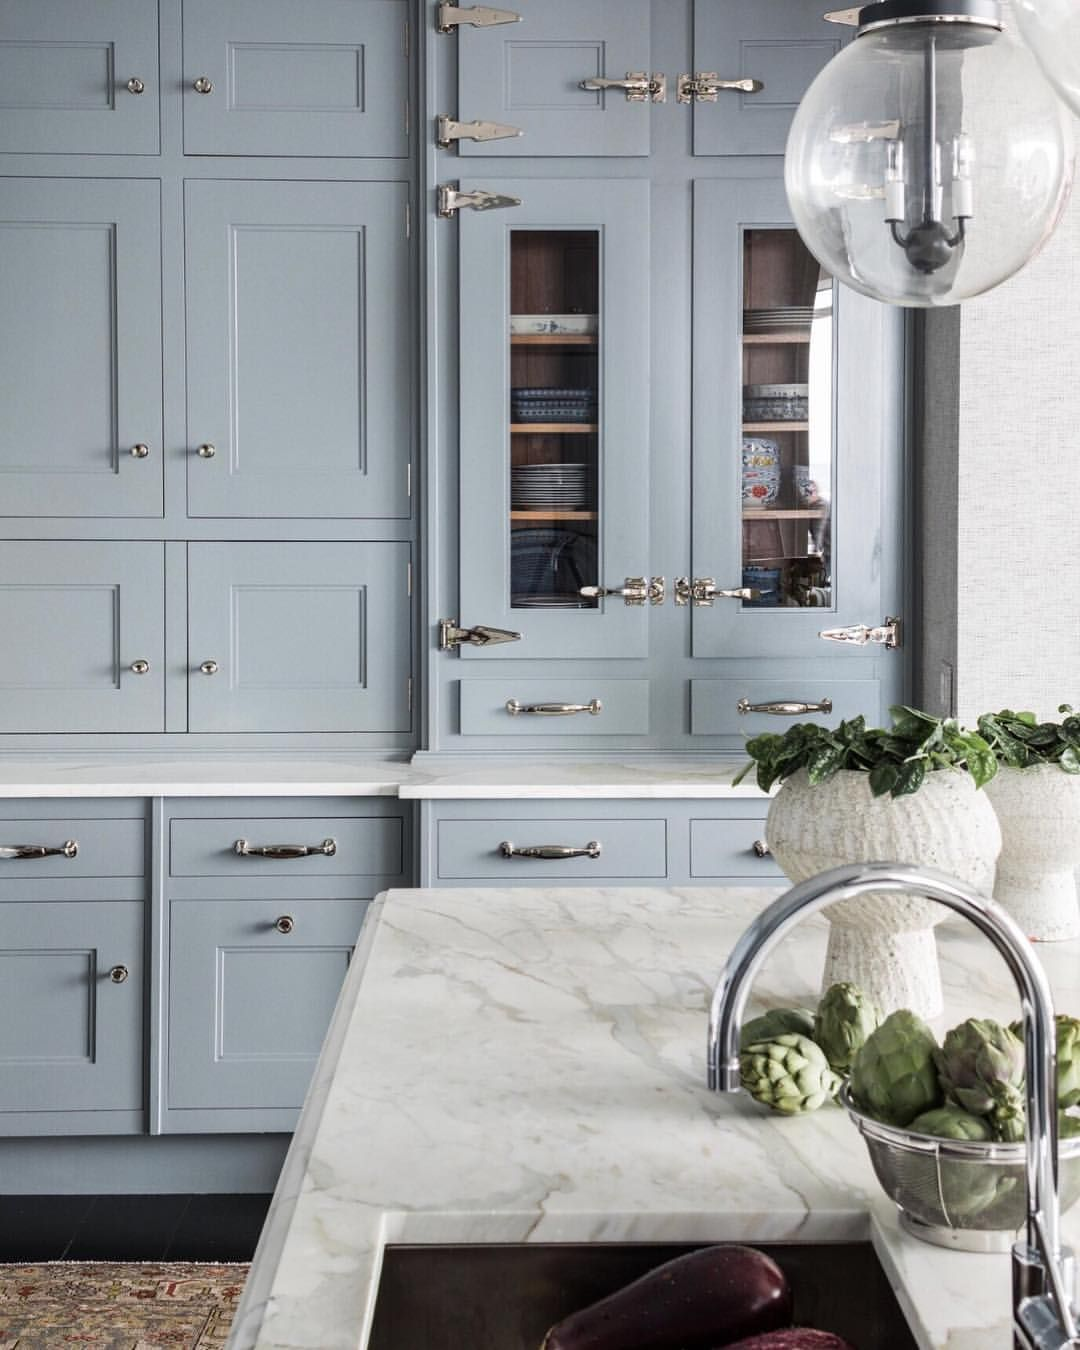 Pin by naomi hoffman on inside style in pinterest kitchen